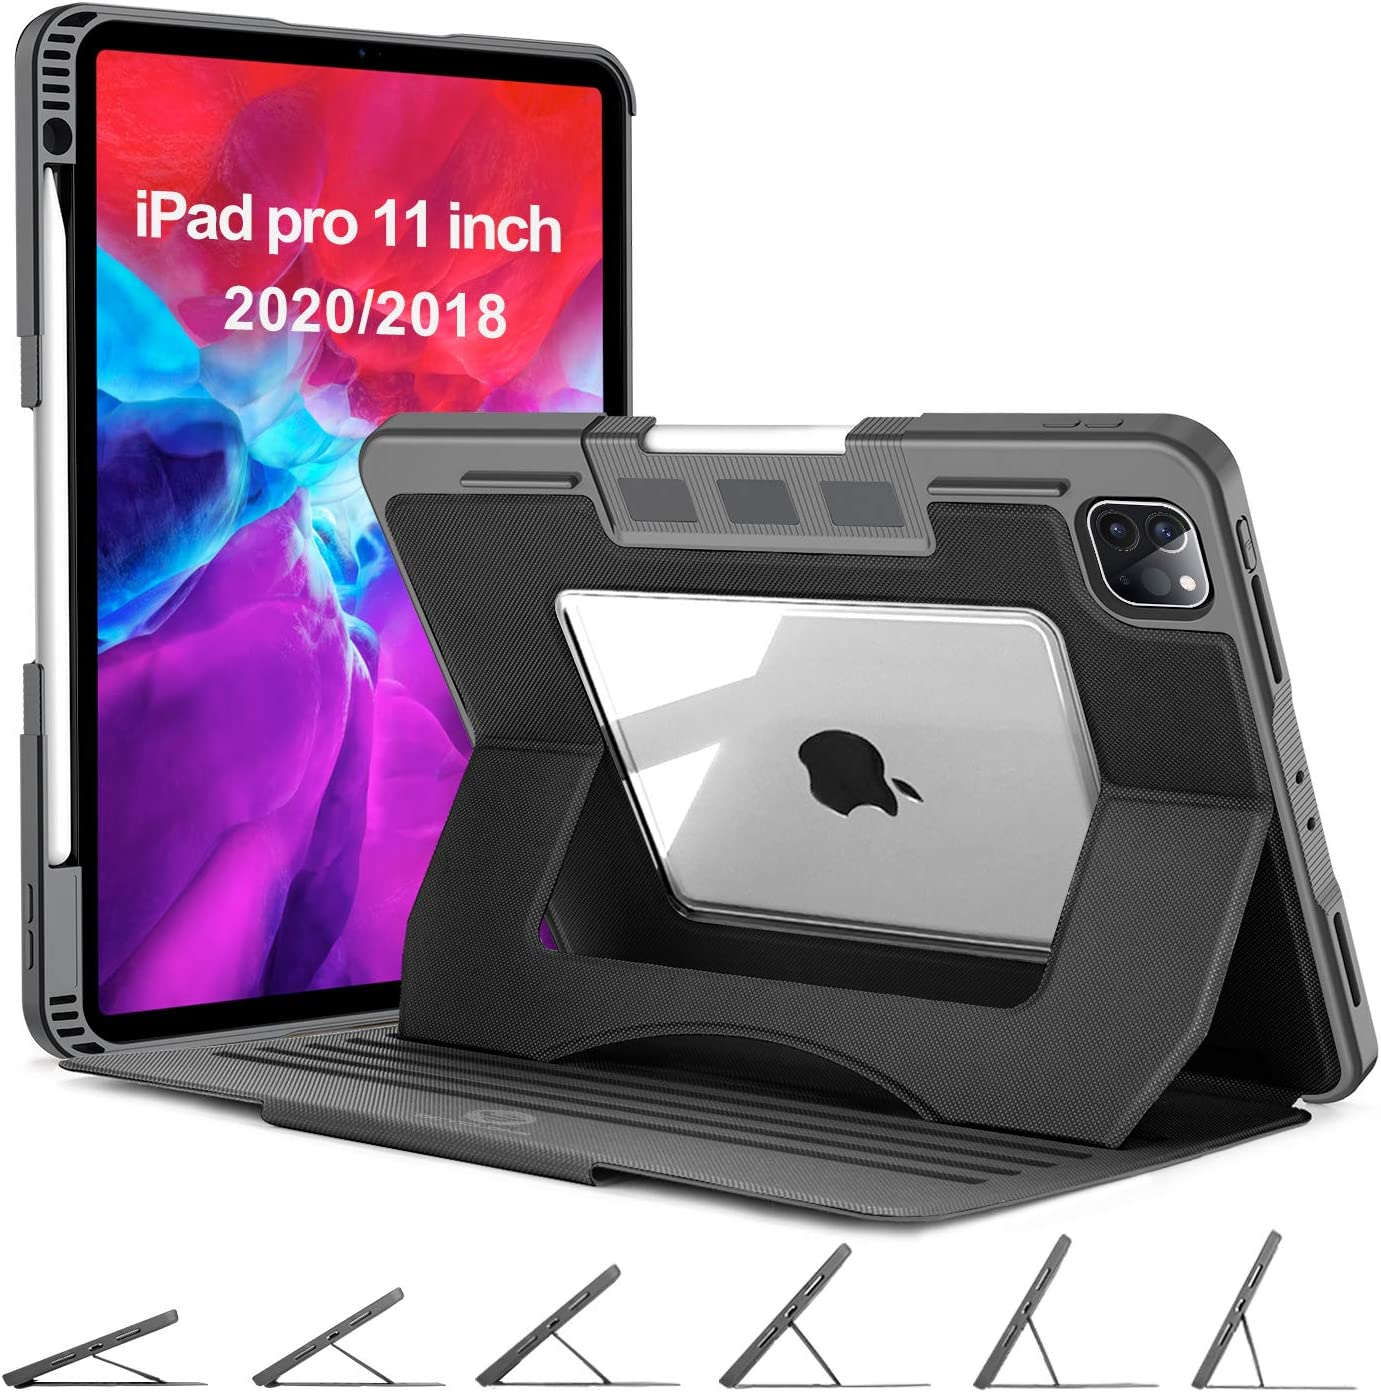 OCYCLONE iPad Pro 11 Case 2020, 6 Viewing Angles Magnetic Stand + Apple Pencil Holder + Auto Wake/Sleep + Clear Back Heavy Duty Rugged Protective Case for iPad Pro 11 inch 1st/2nd Generation - Black